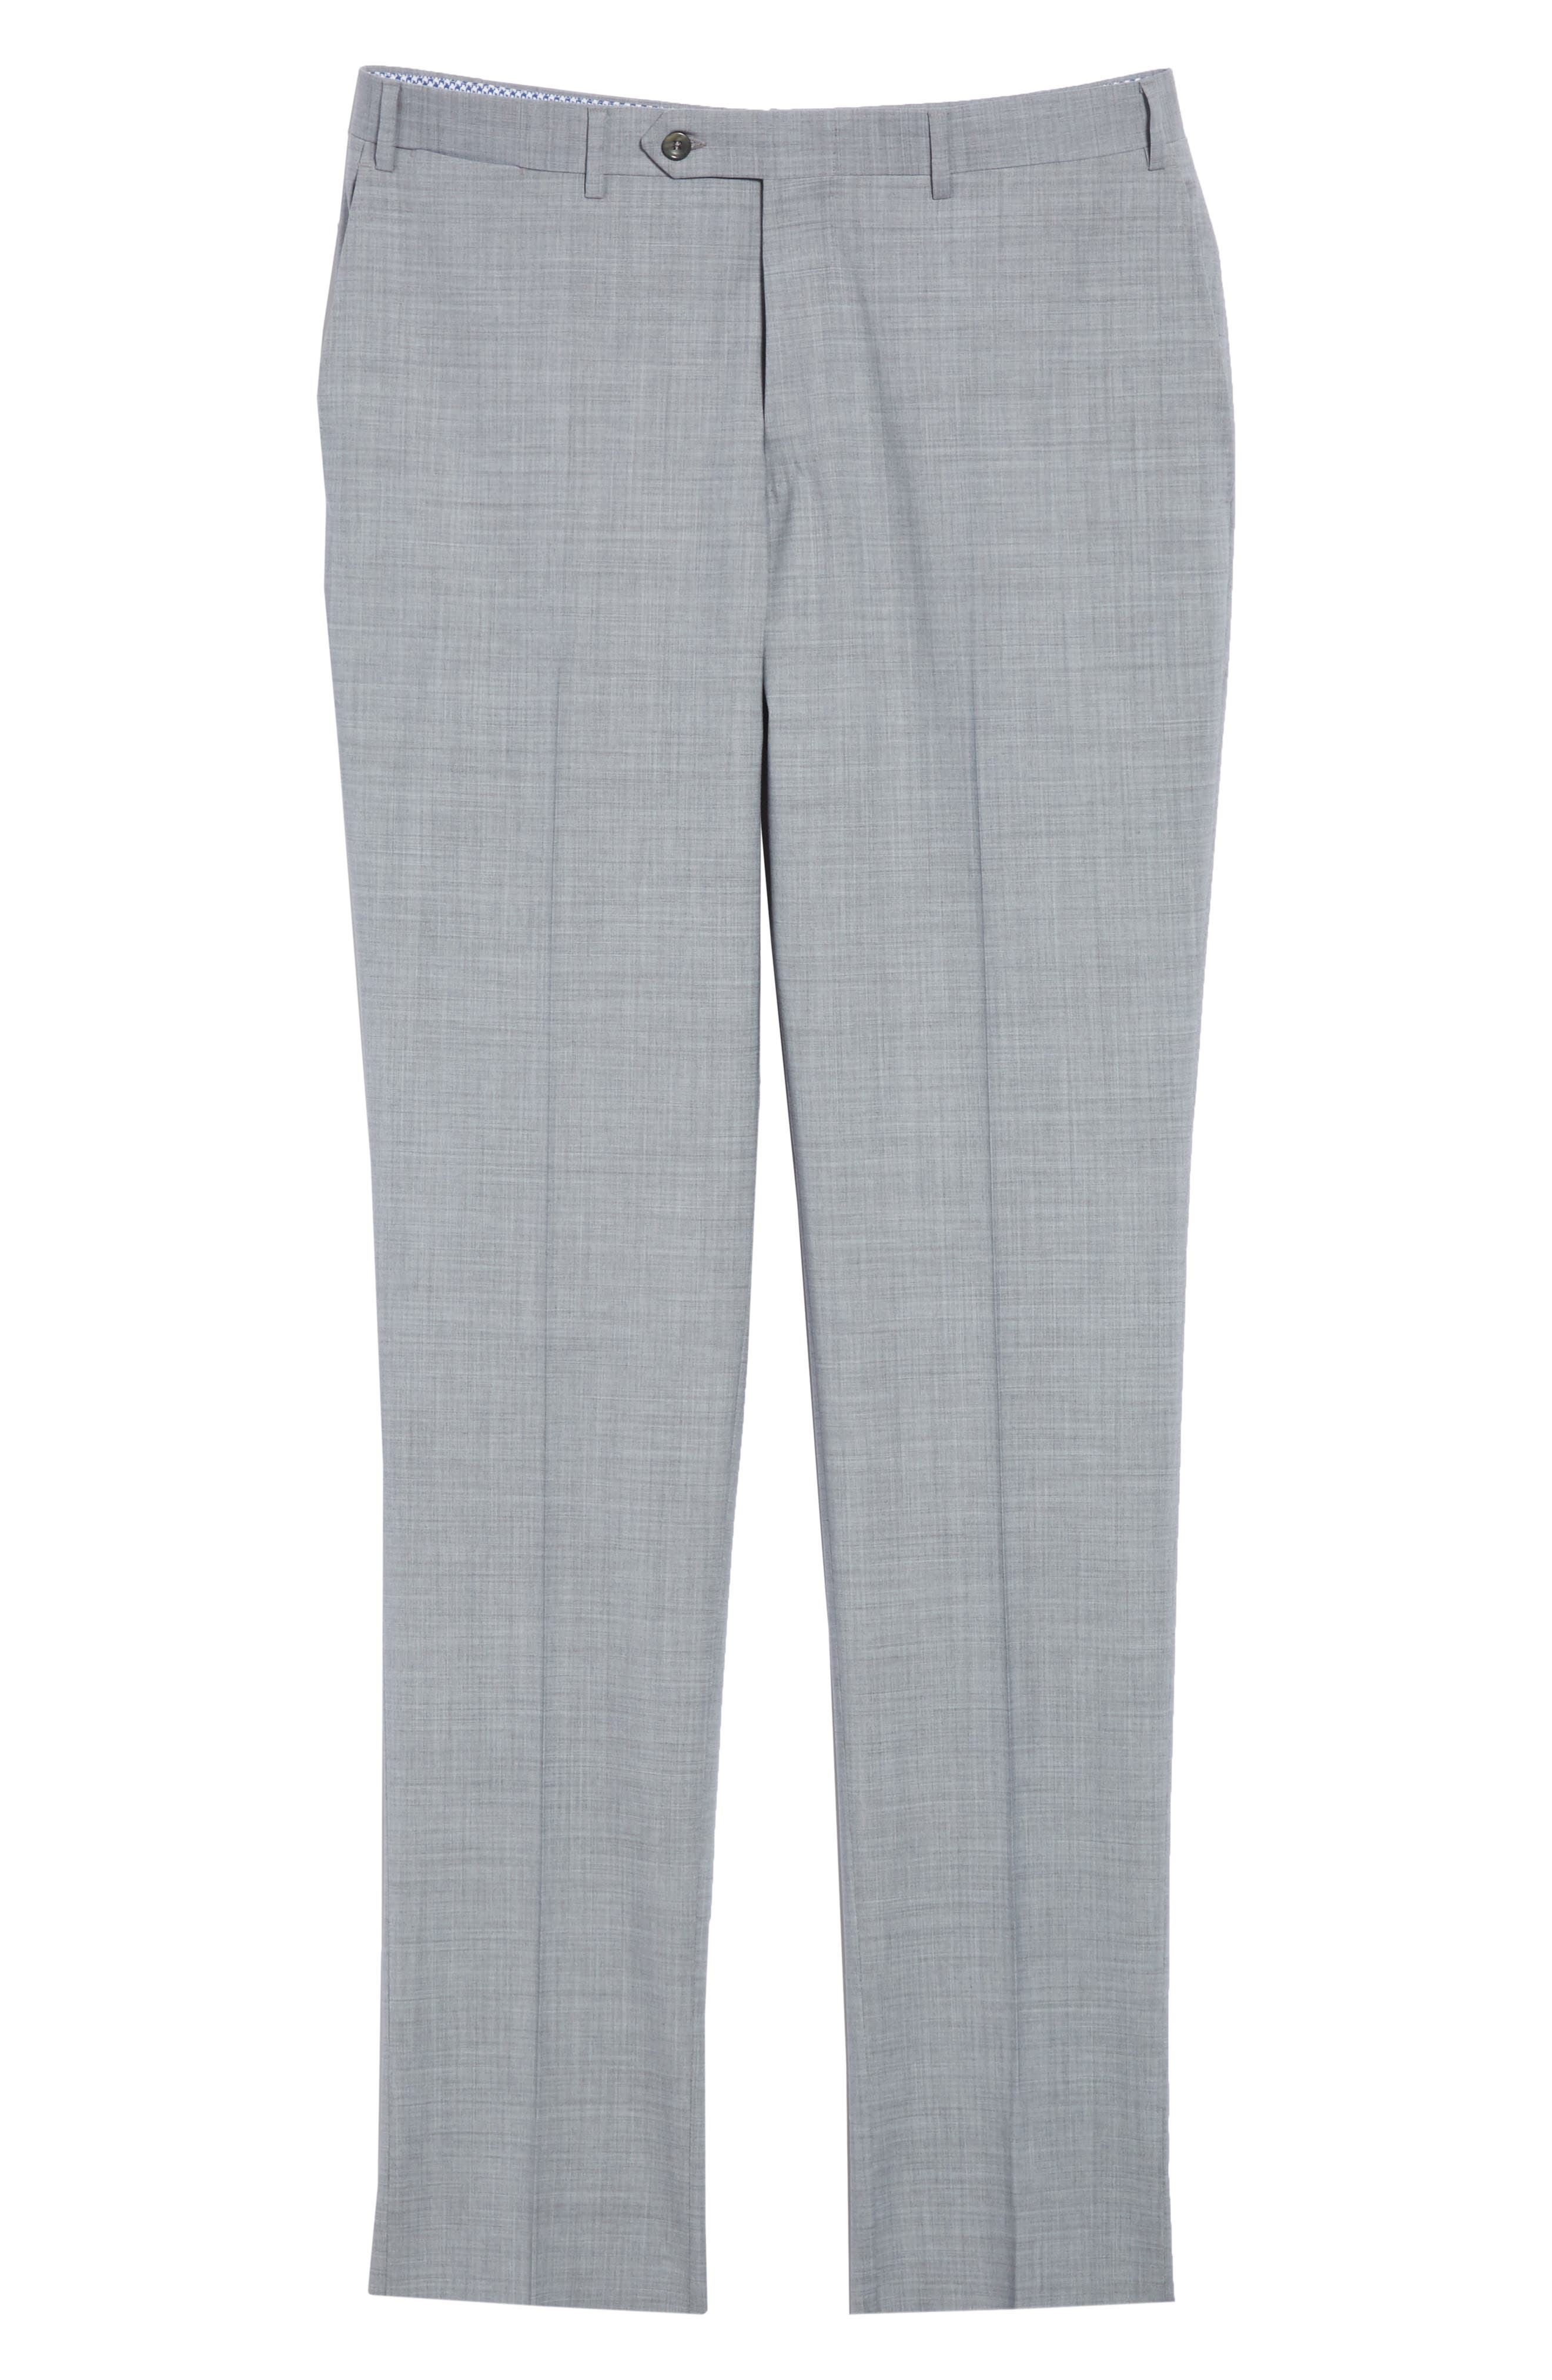 Kei Flat Front Solid Wool Trousers,                             Alternate thumbnail 16, color,